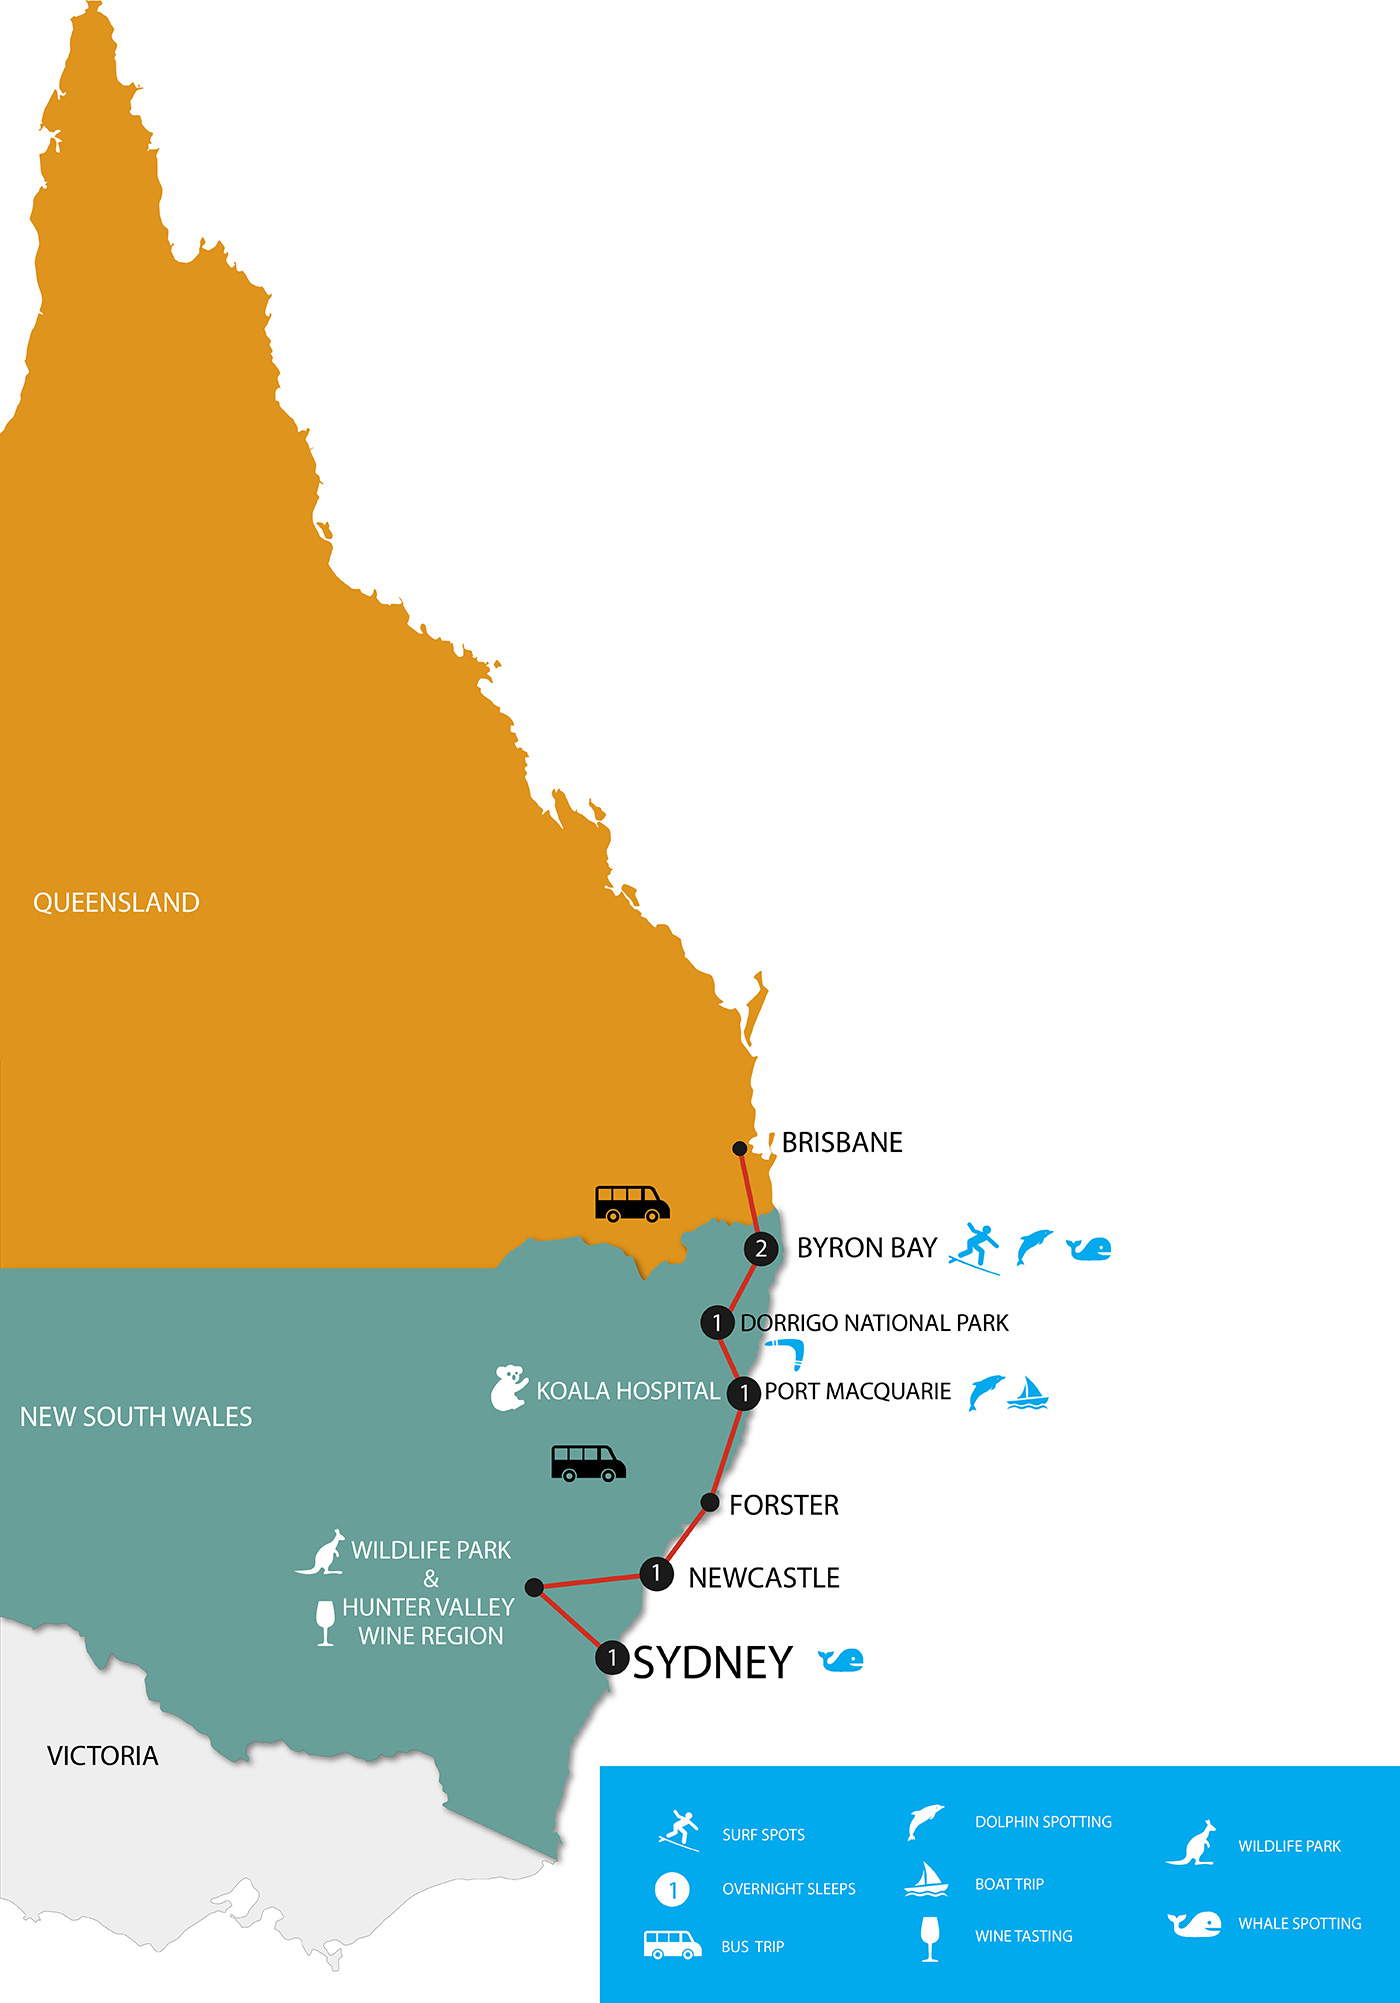 Via Travel East Coast Australia Tours - 7 Days from Sydney to Brisbane in a small group